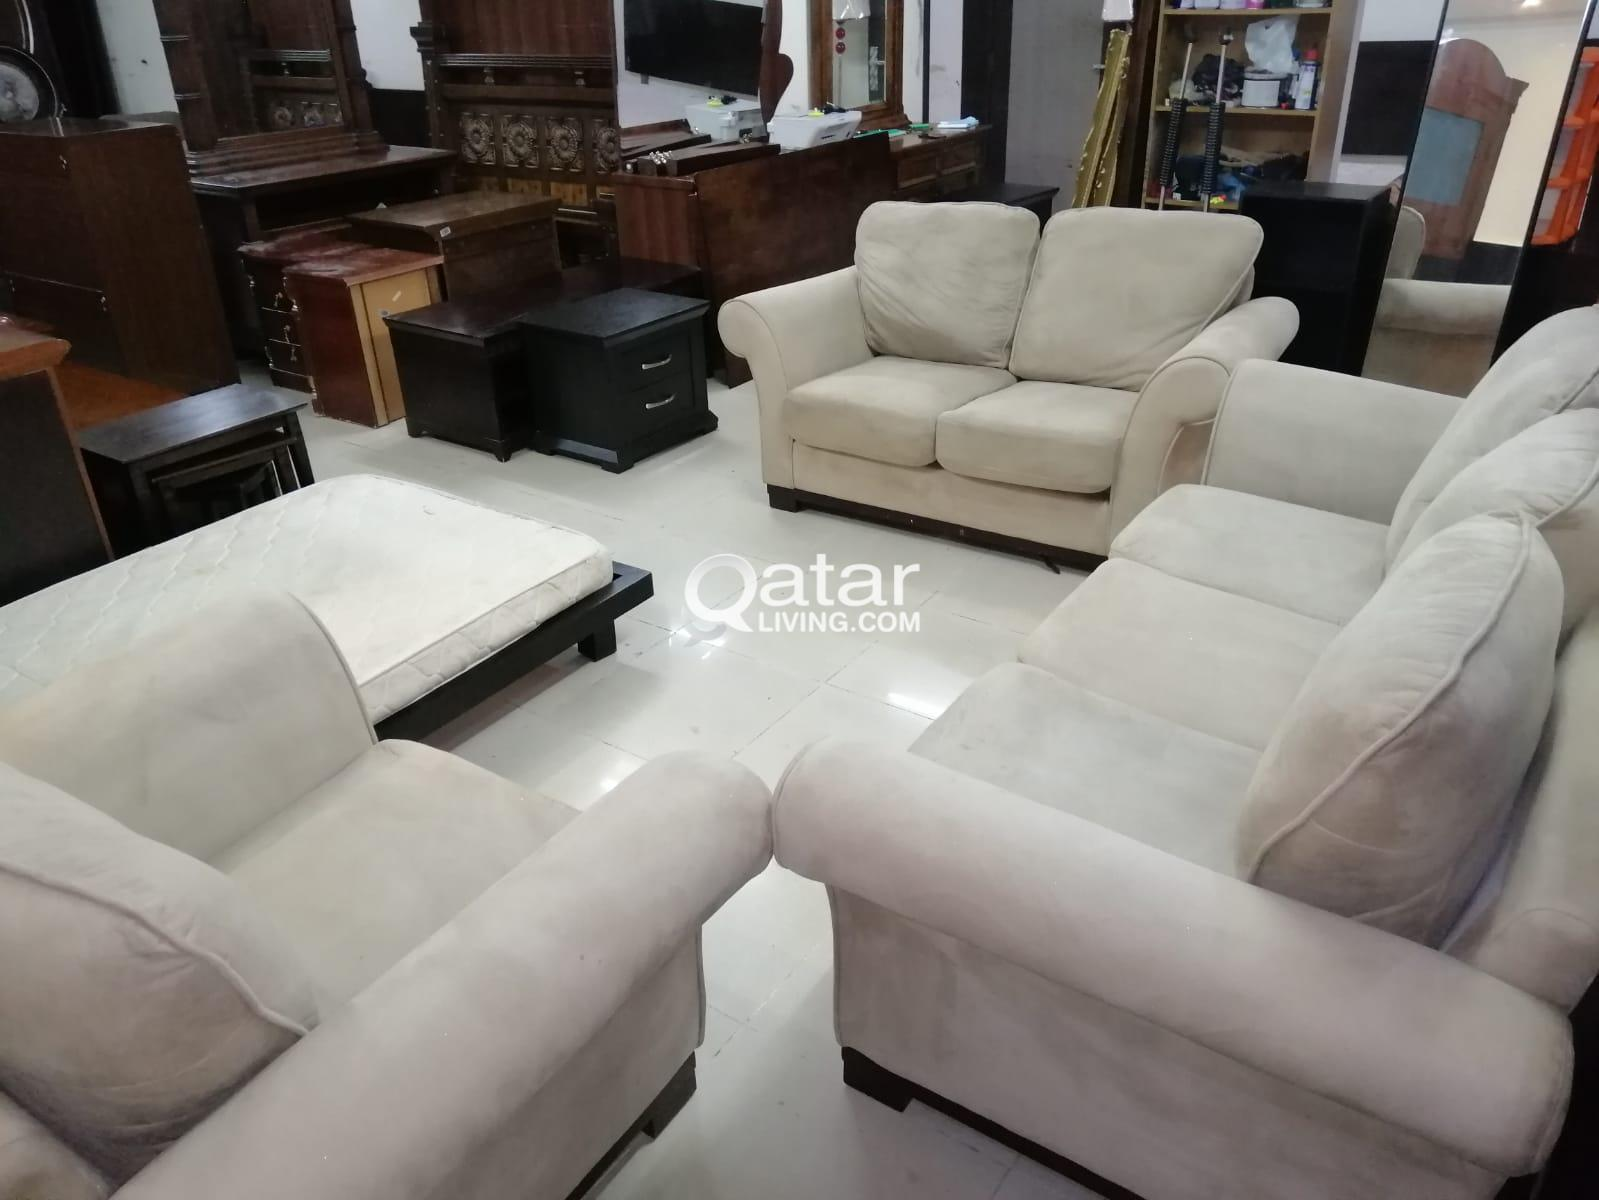 We are selling household furniture items contact:55117826